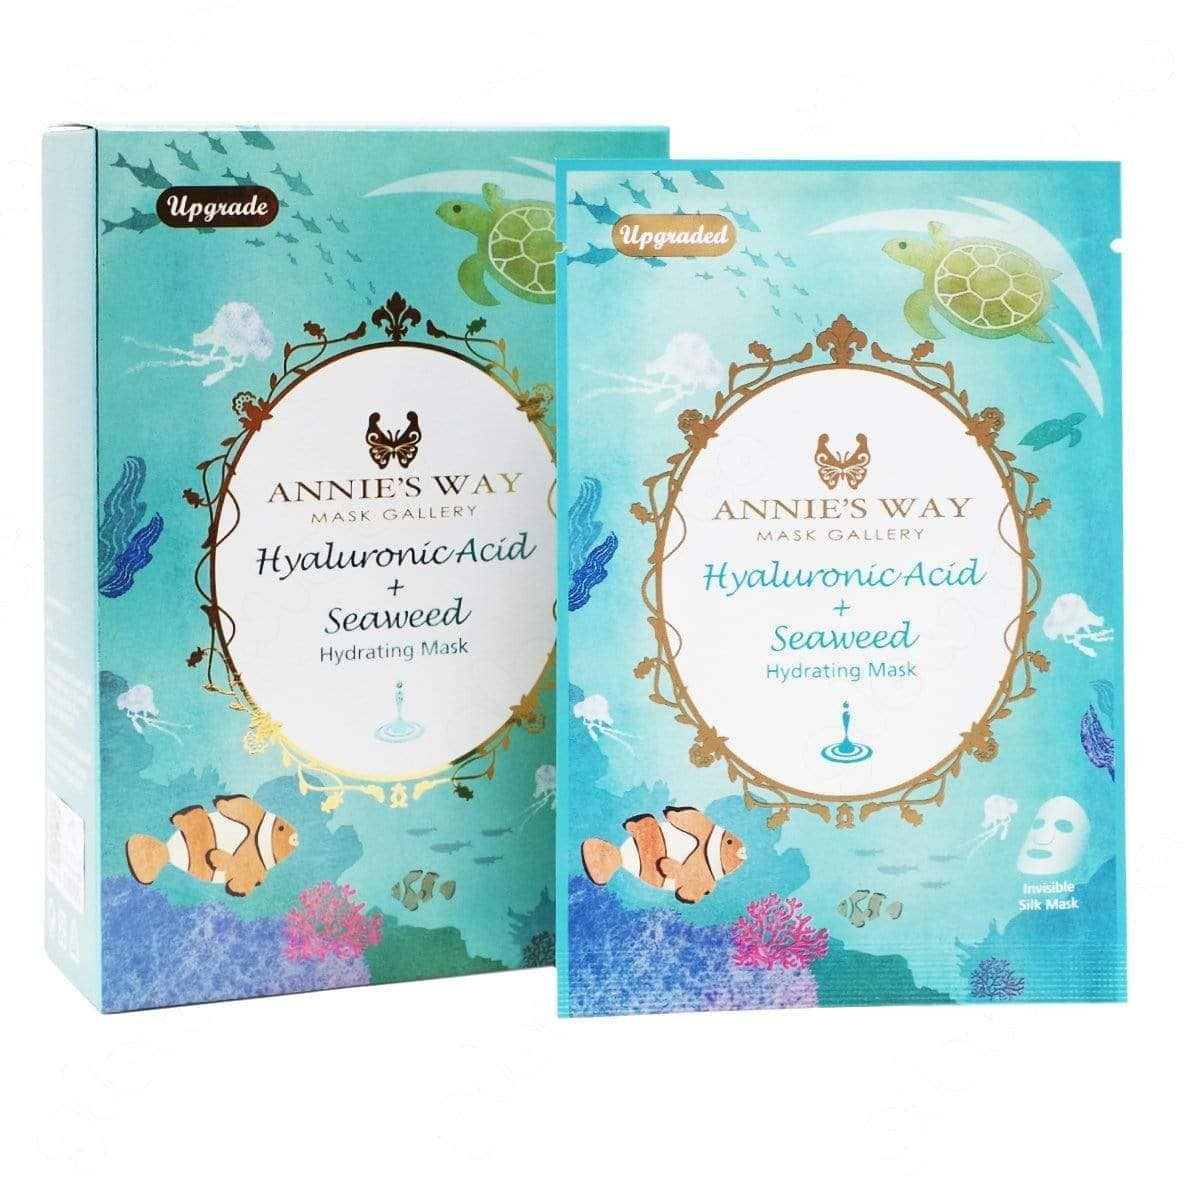 Annie's Way Hyaluronic Acid + Seaweed Hydrating Sheet Mask